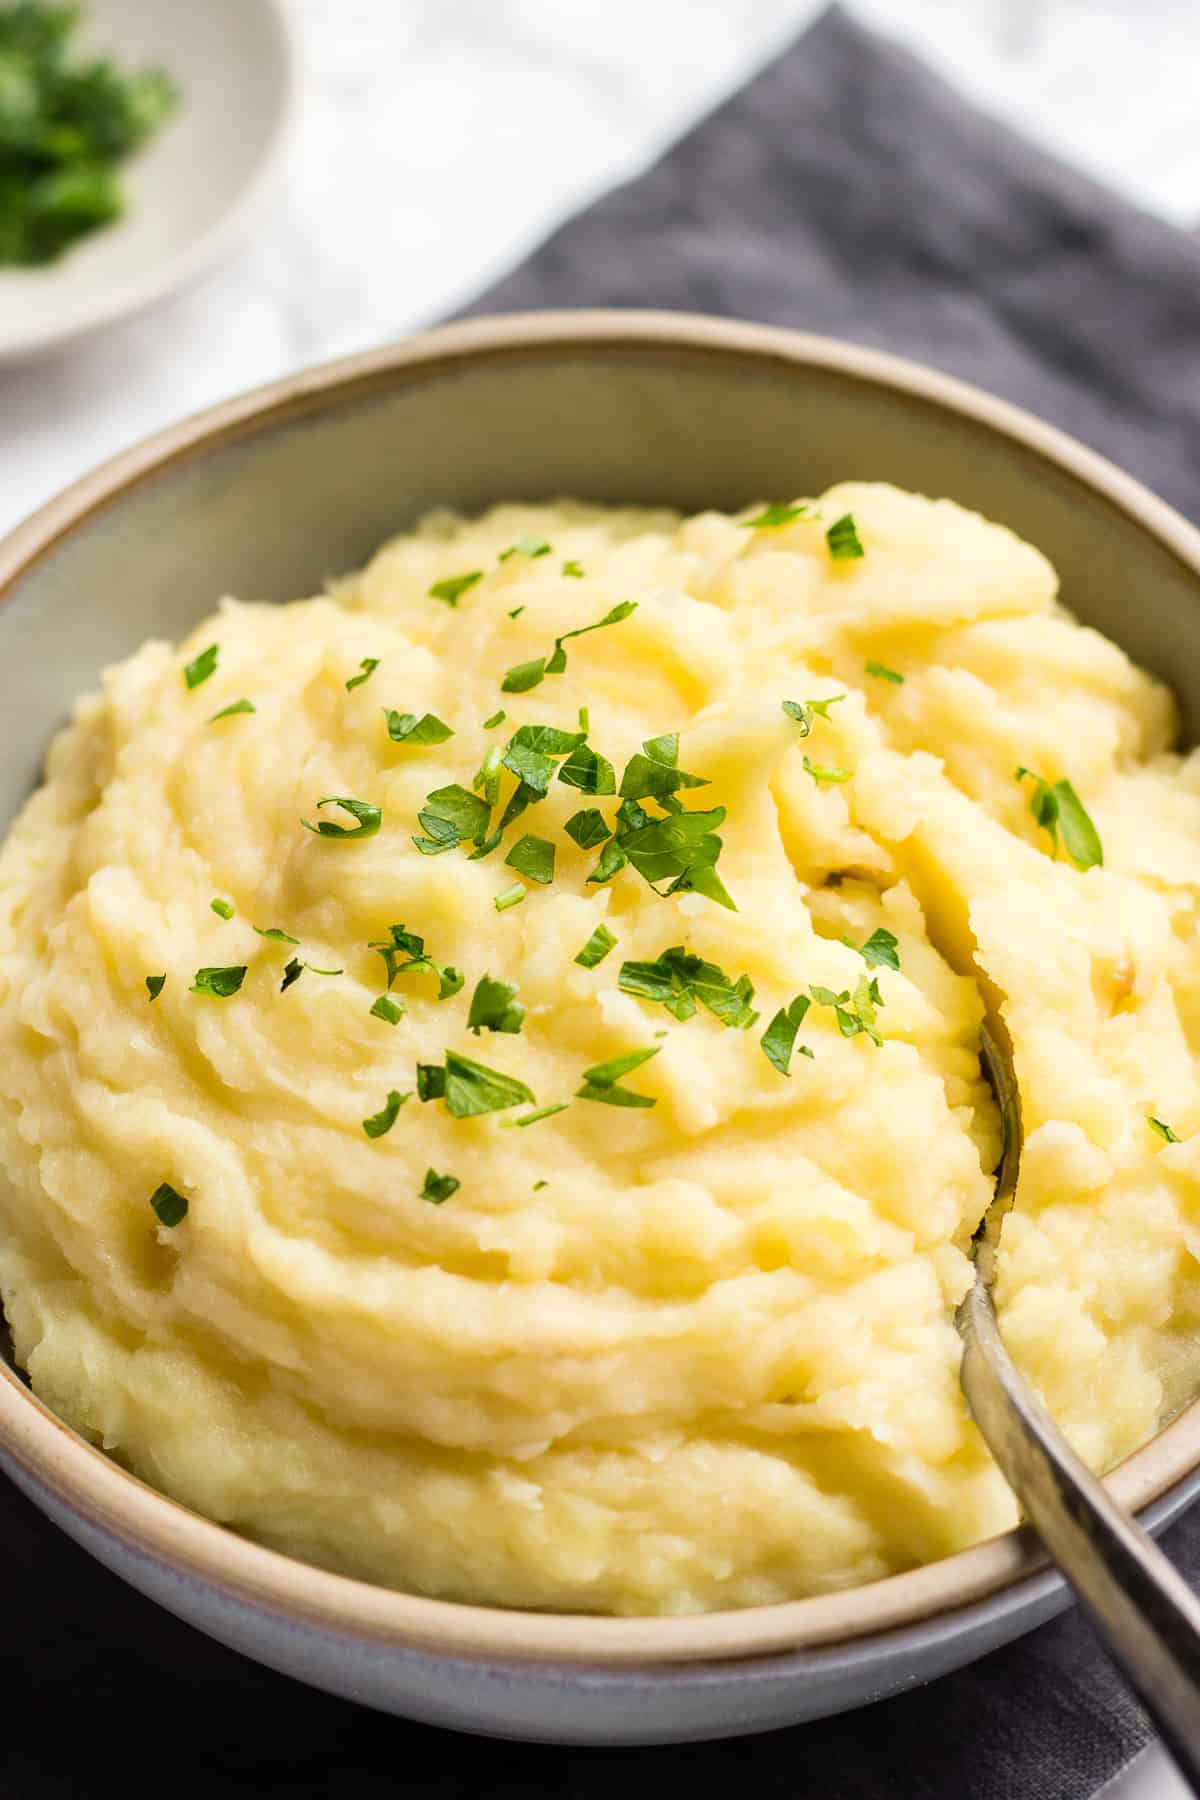 Potato mash in a bowl